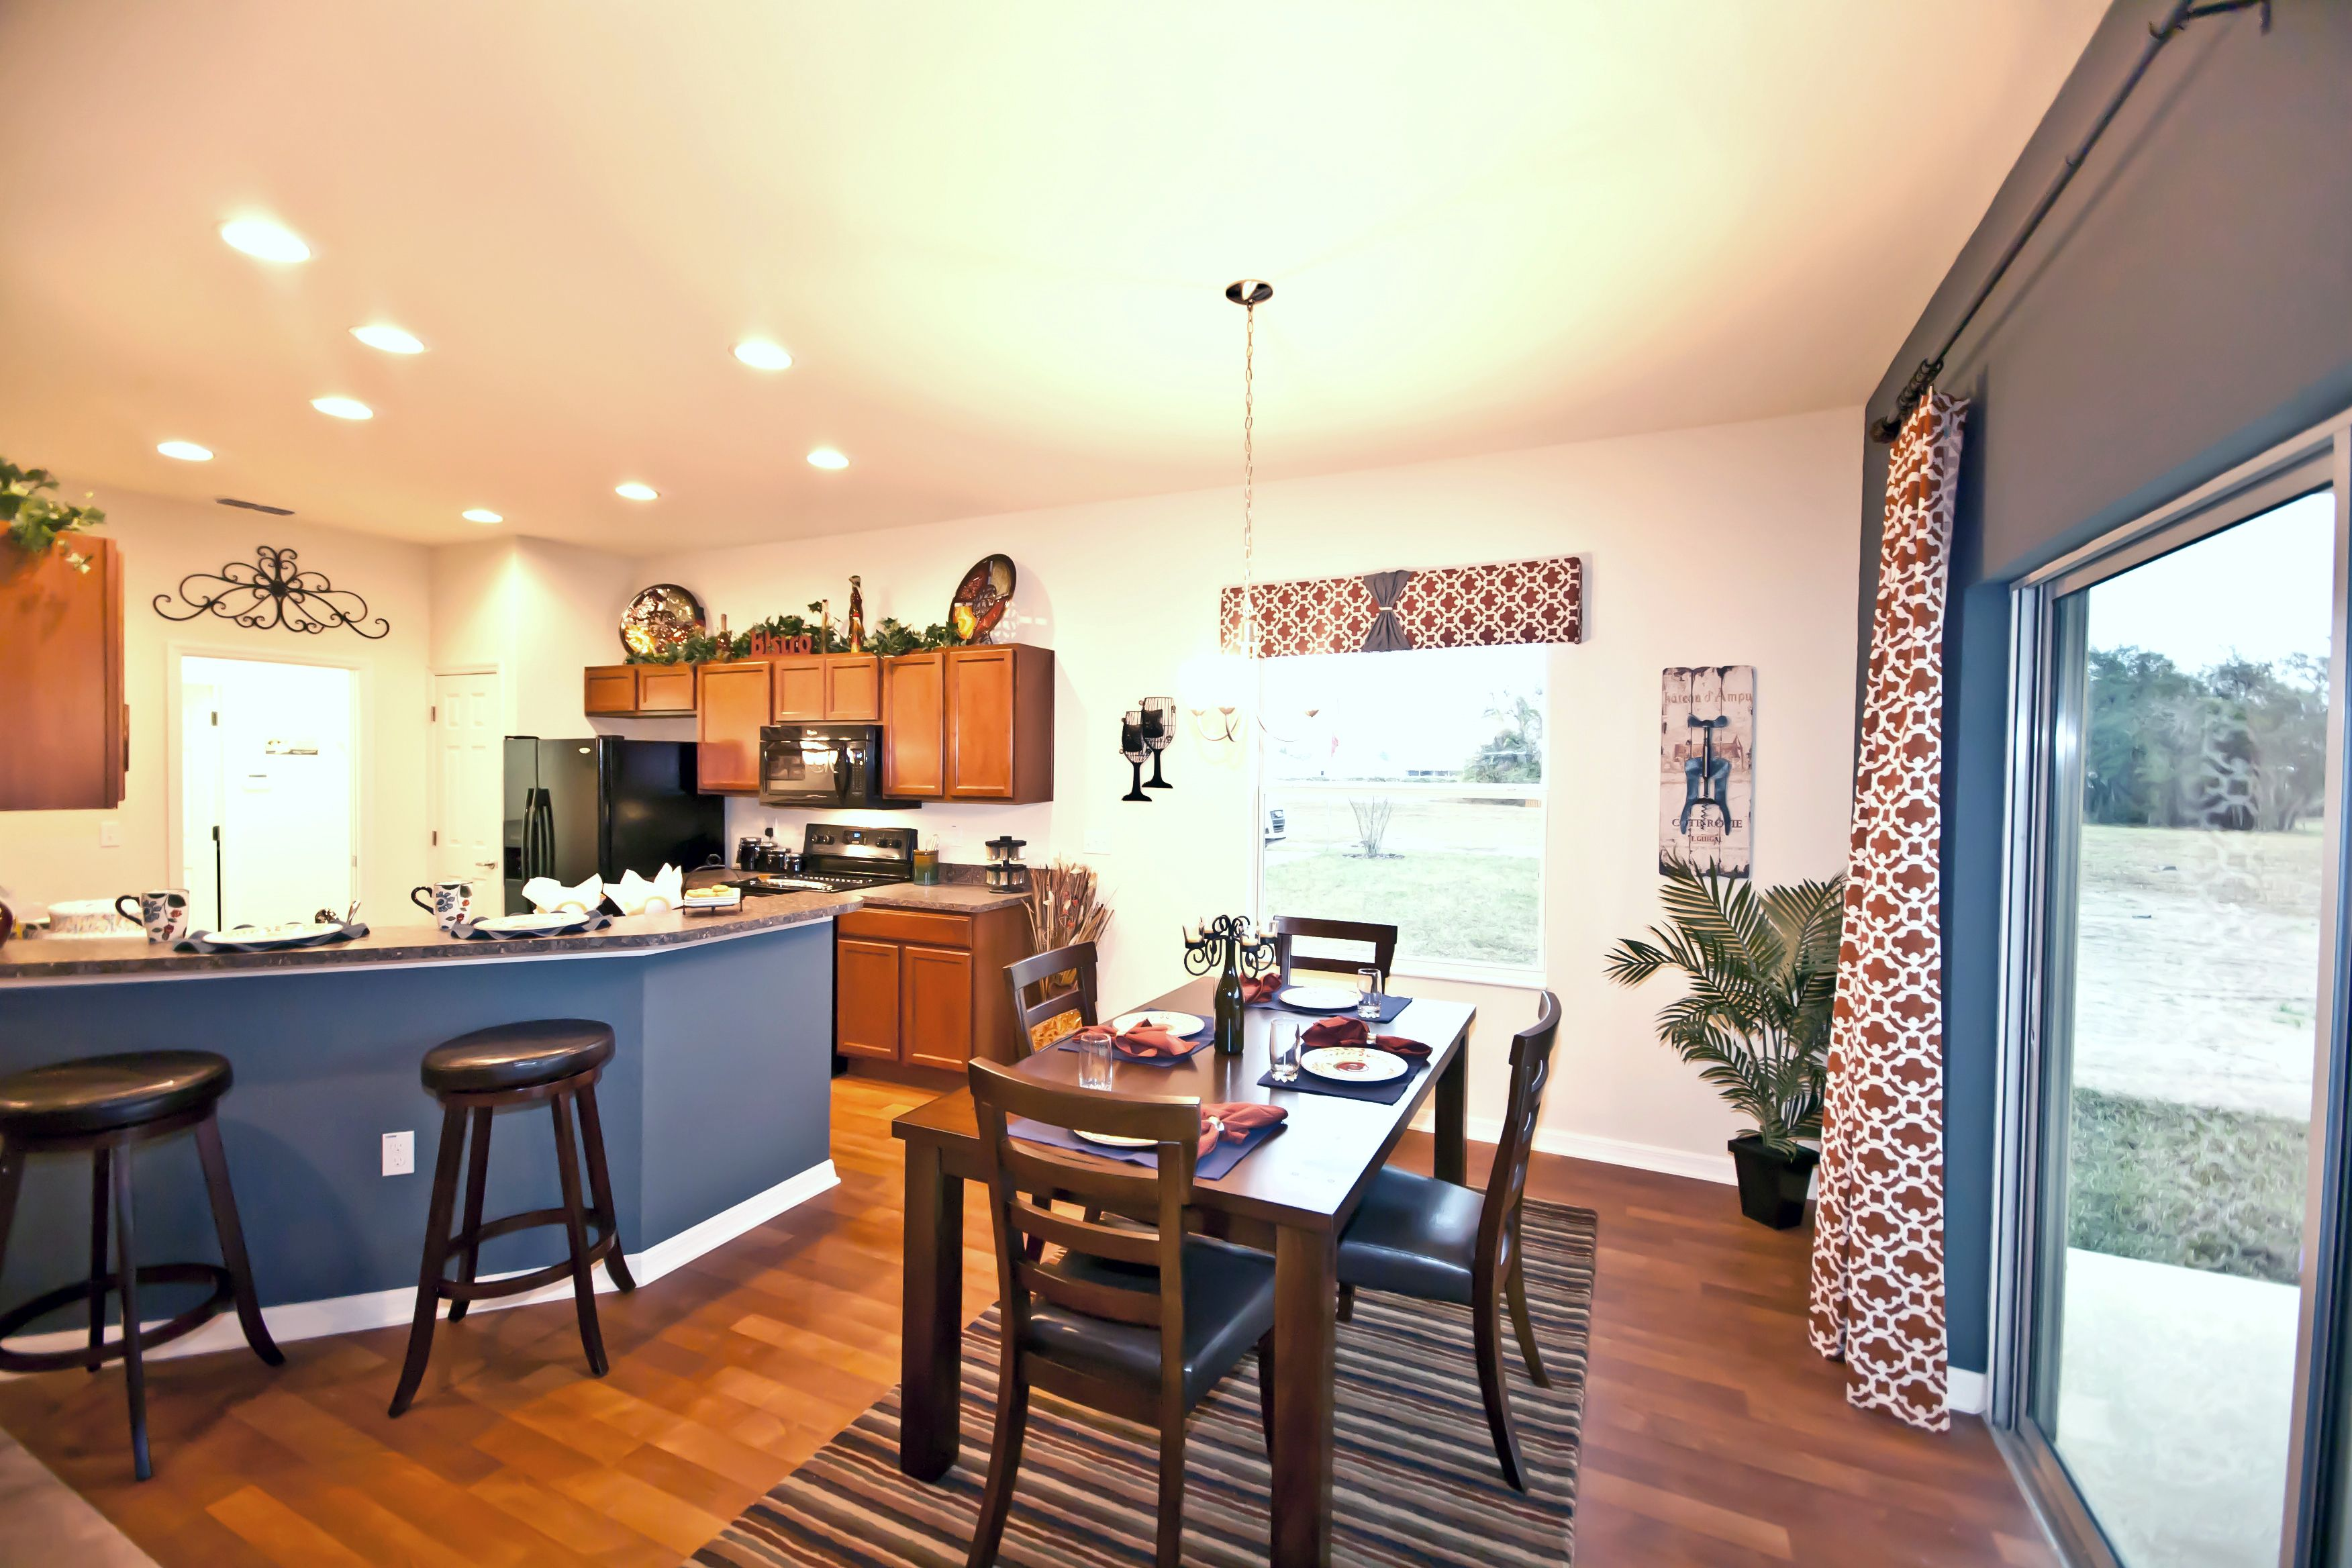 Love The Matching Accent Wall And Painted Under Breakfast Bar Highland Homes Model Home In Gibsonton Fl Decorating Decor Paint